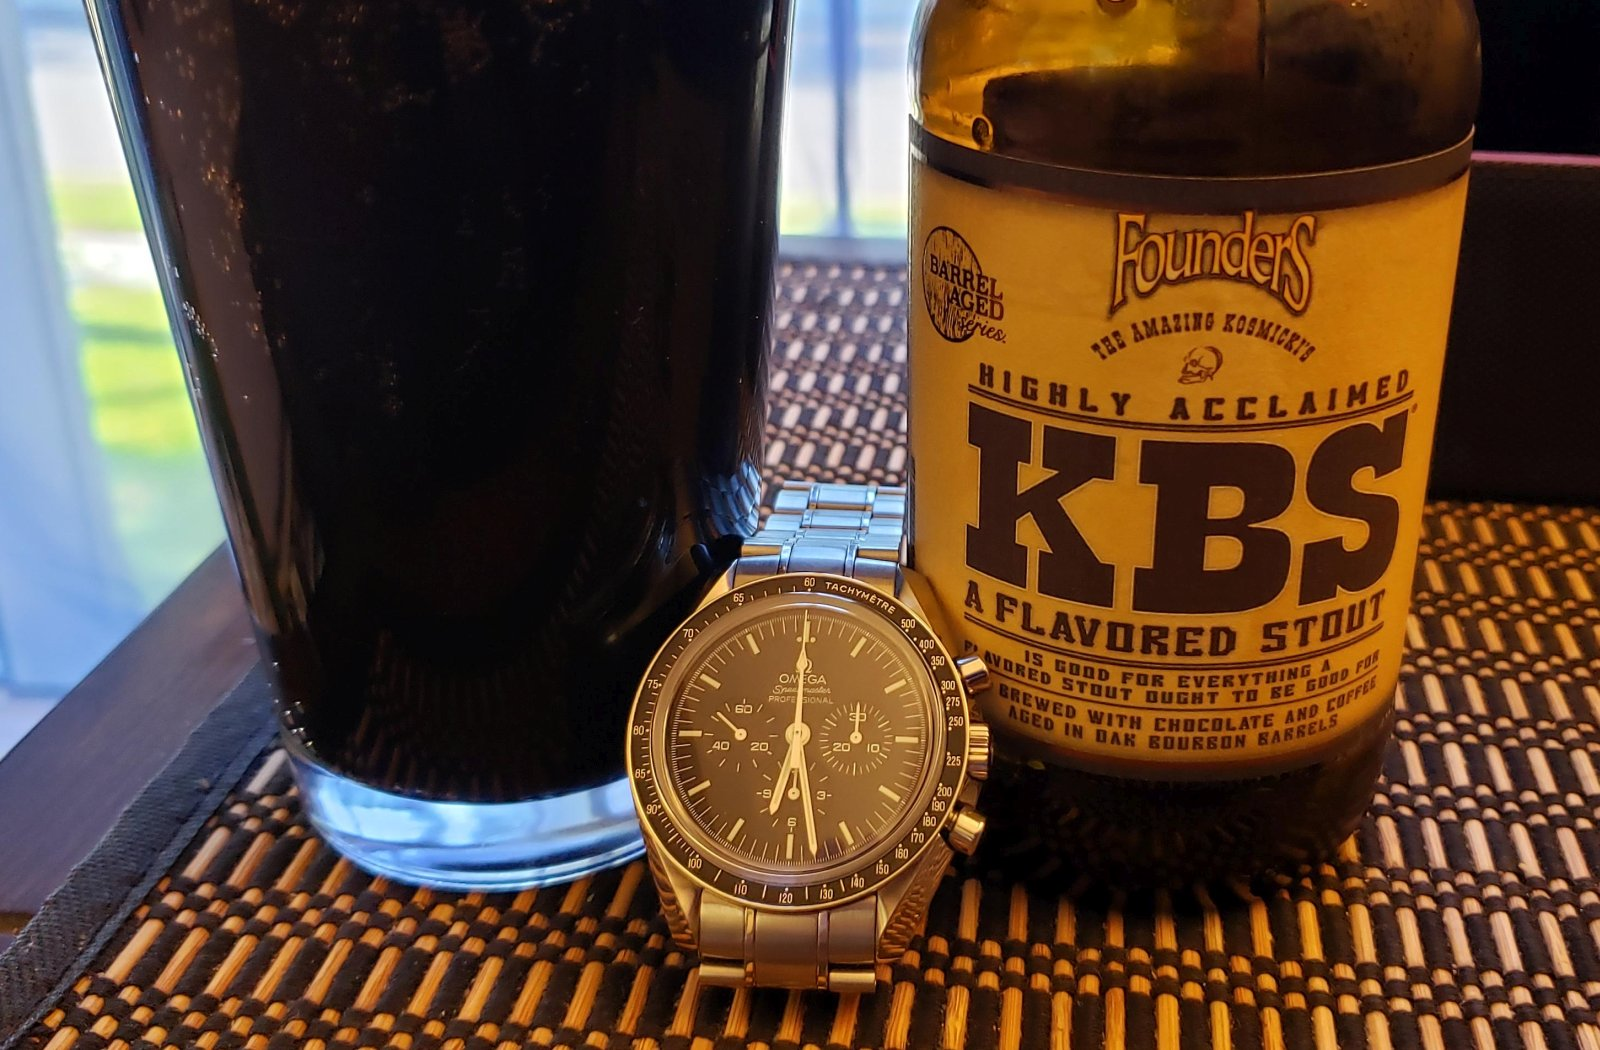 Name:  Founders_KBS_Flavored_Stout_w_Omega_Speedmaster_Moonwatch.jpg Views: 94 Size:  281.8 KB